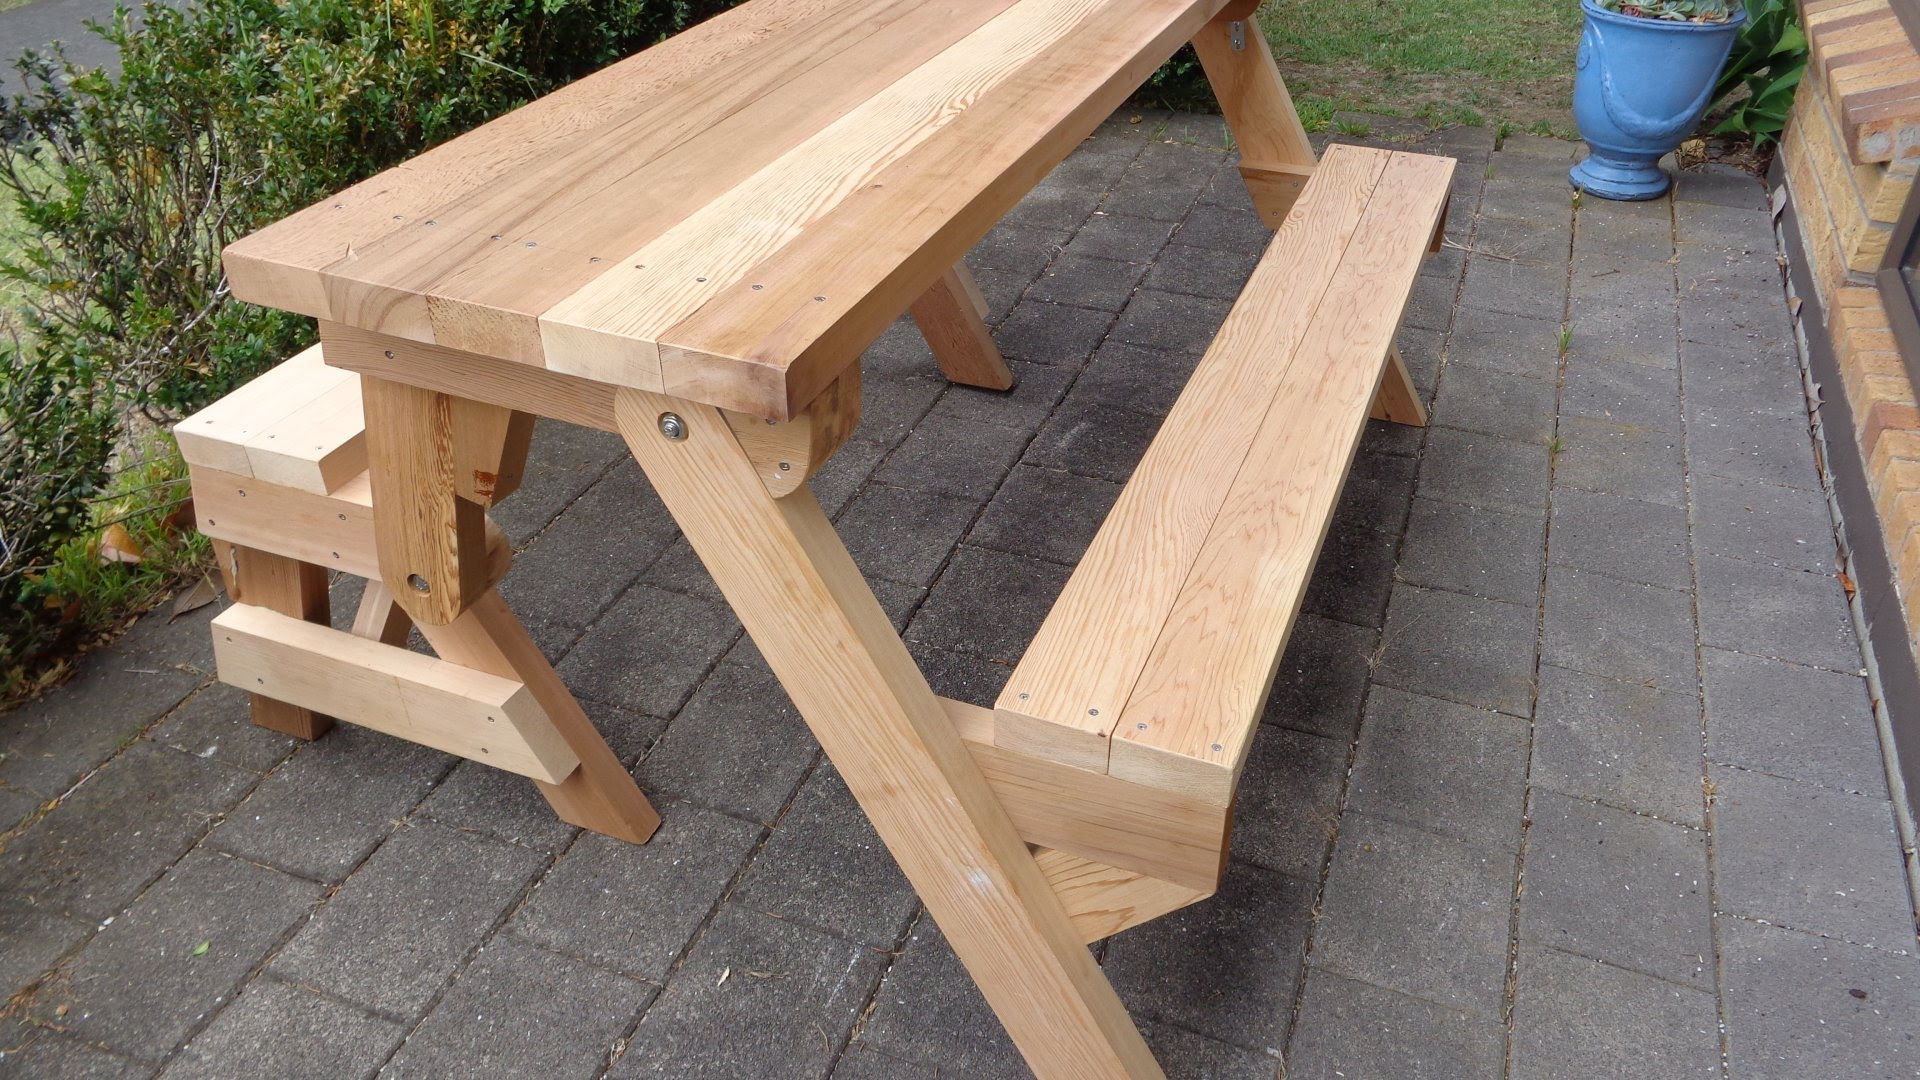 folding picnic table made out of 2x4s - youtube TQIIOHT